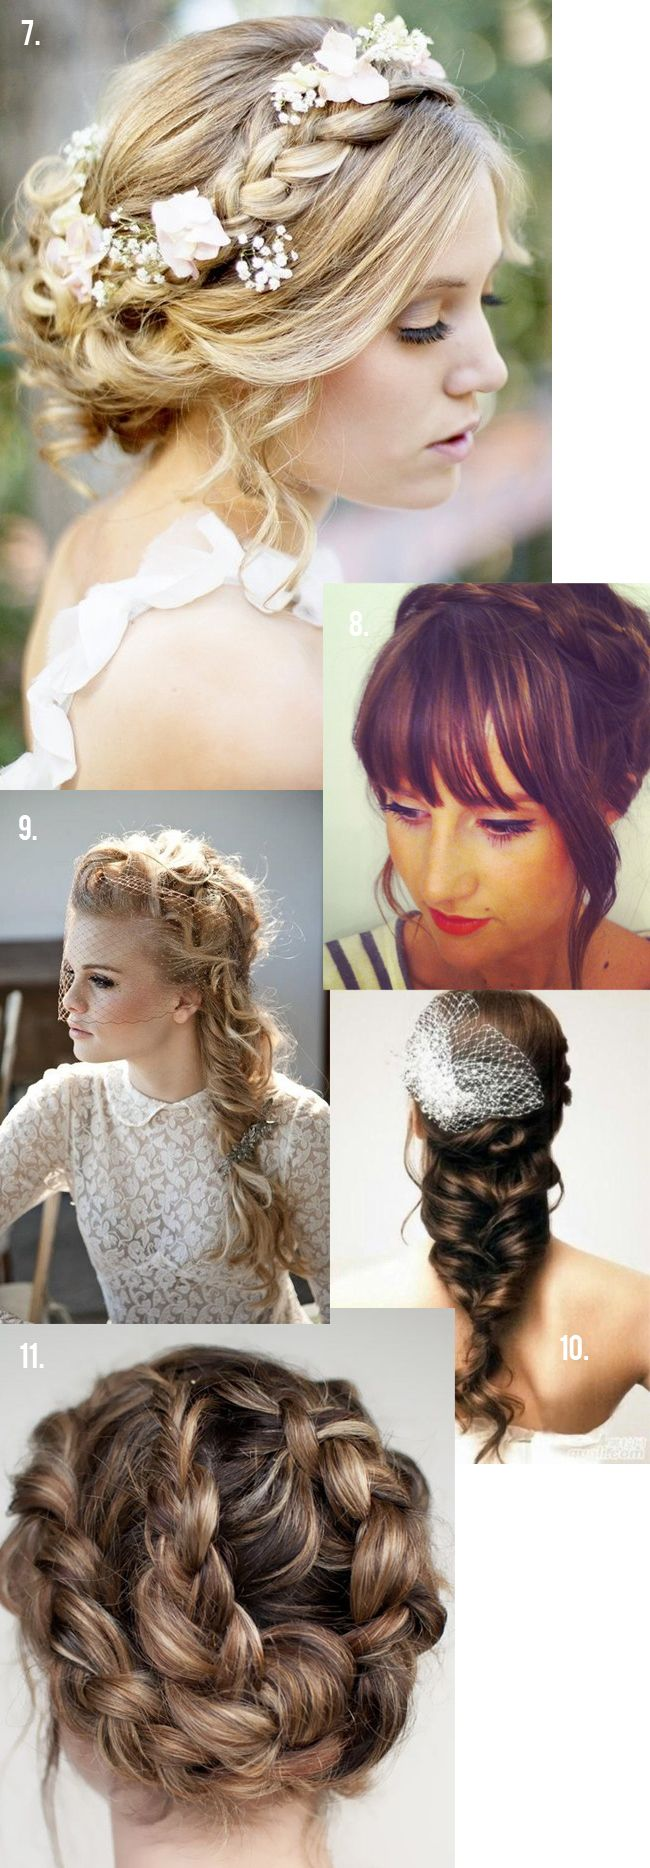 Braids, Braids, and more Braids! I LOVE this style. Im all about The Art of Hair> whitney.